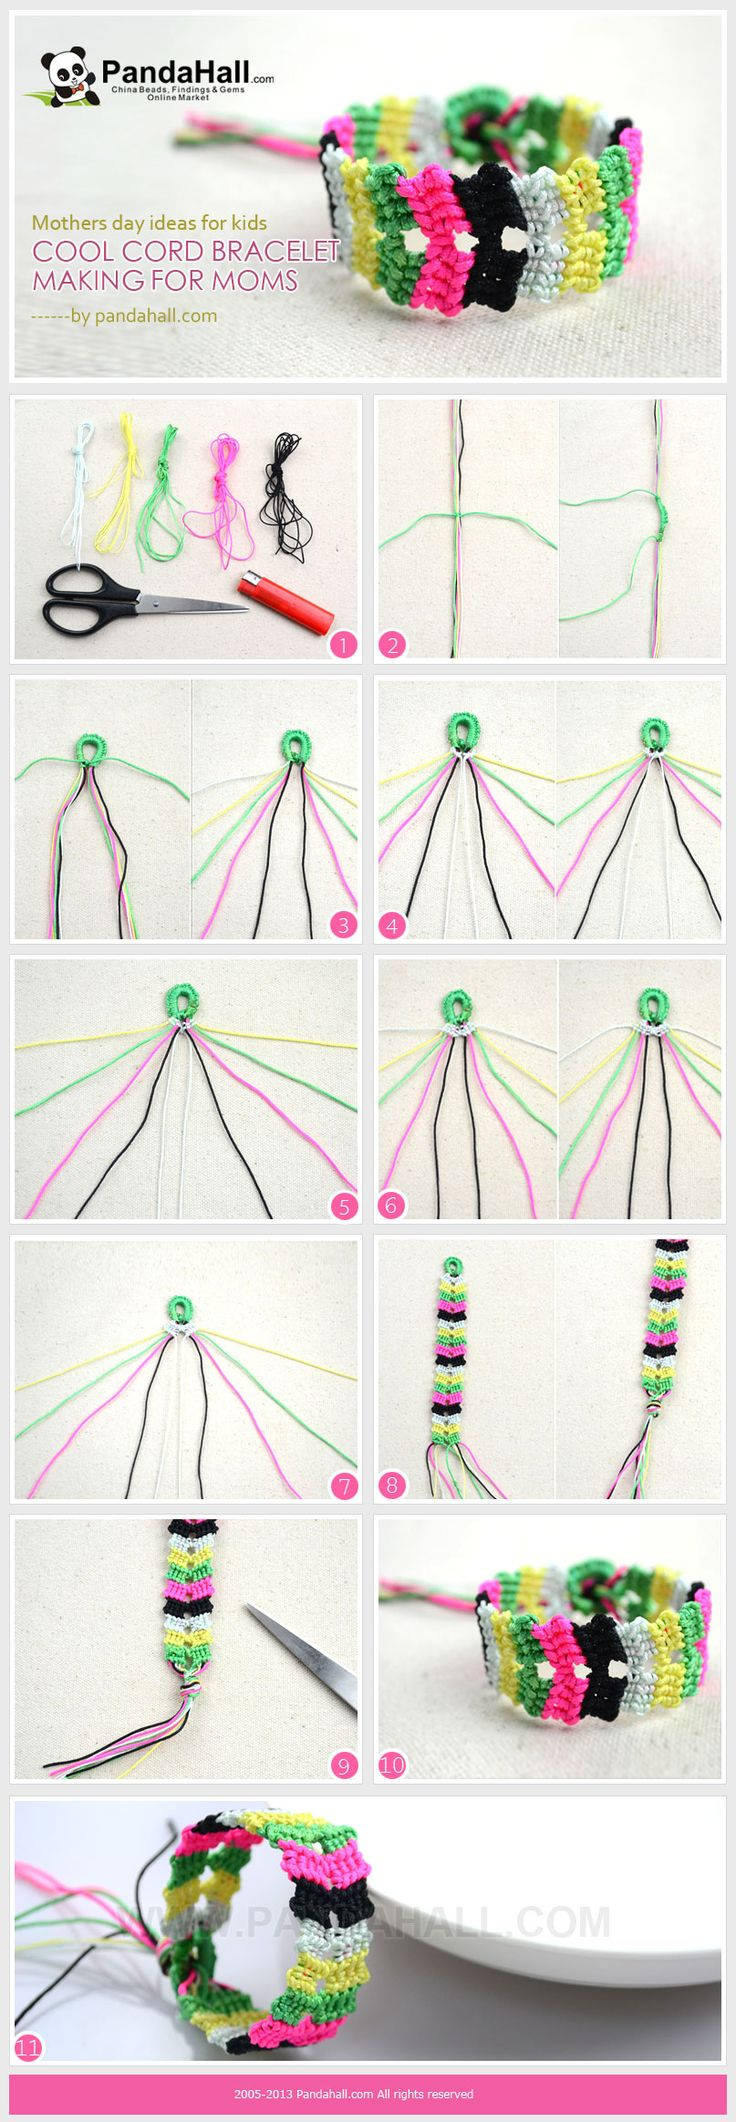 This cord bracelet making design is a pretty good choice of mothers day ideas for kids to do; scissors, the only tool used in this project is a relatively safe one for kids compared to other crafting kits.